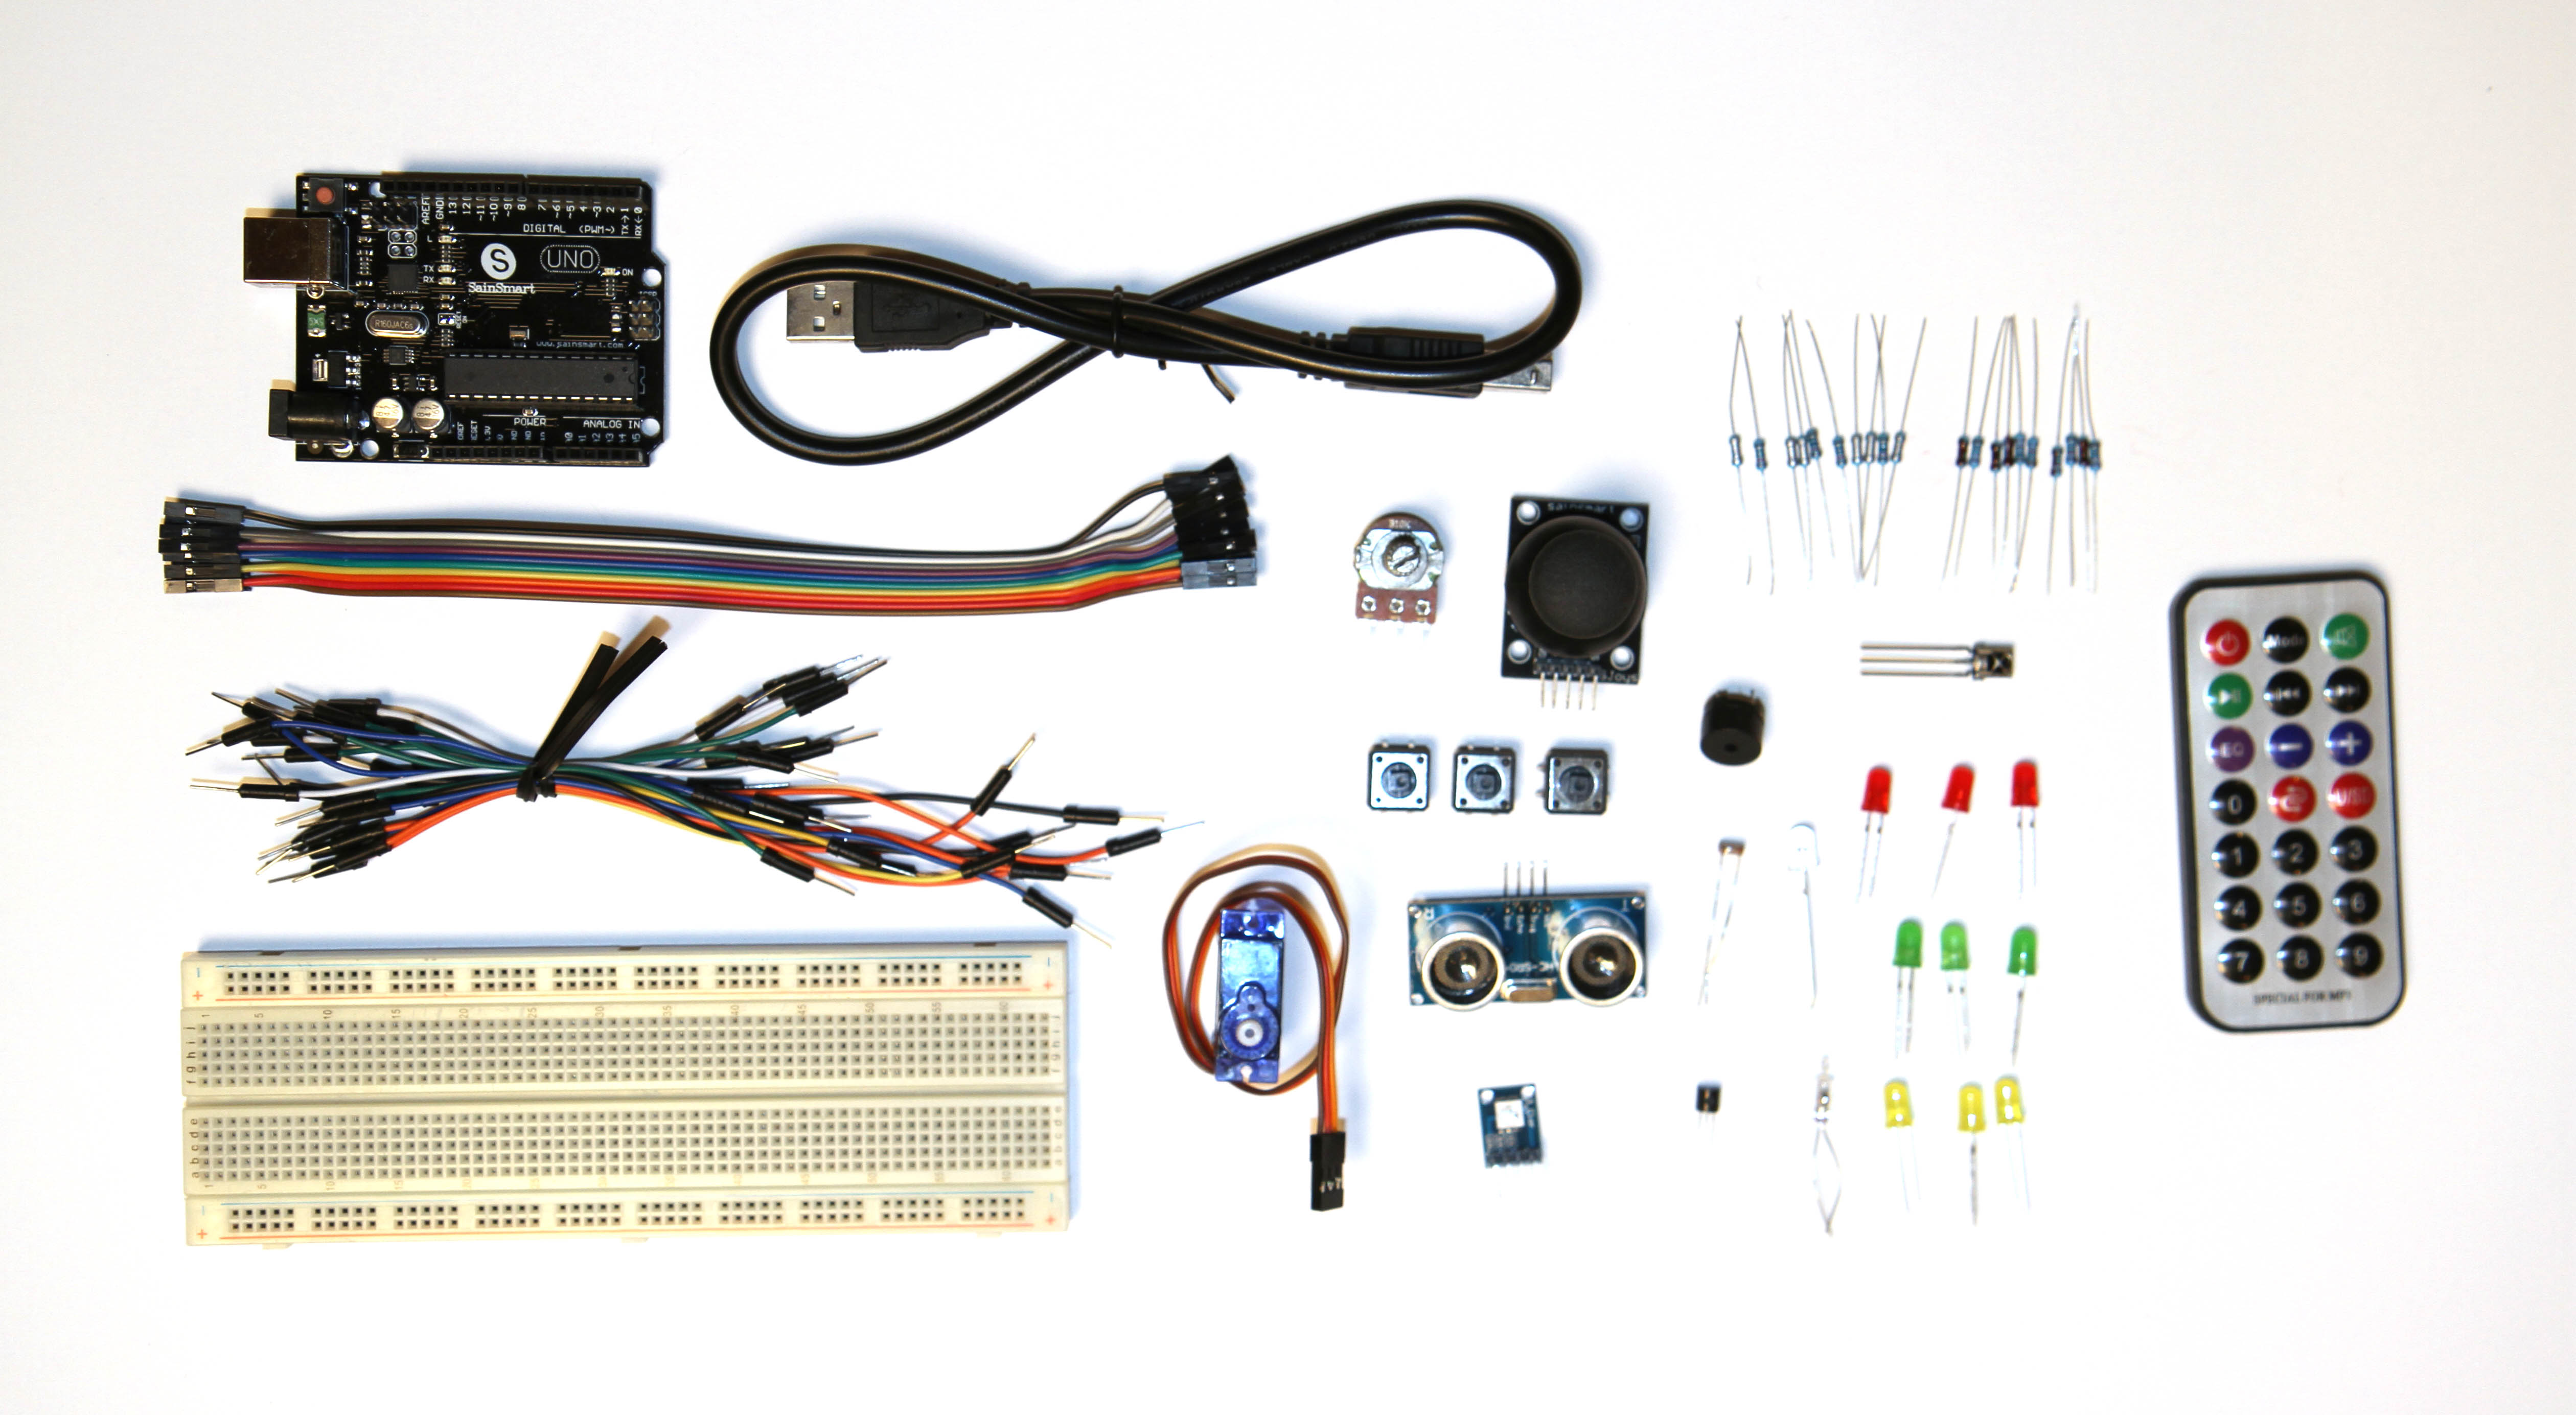 Arduino and parts for the basic kit